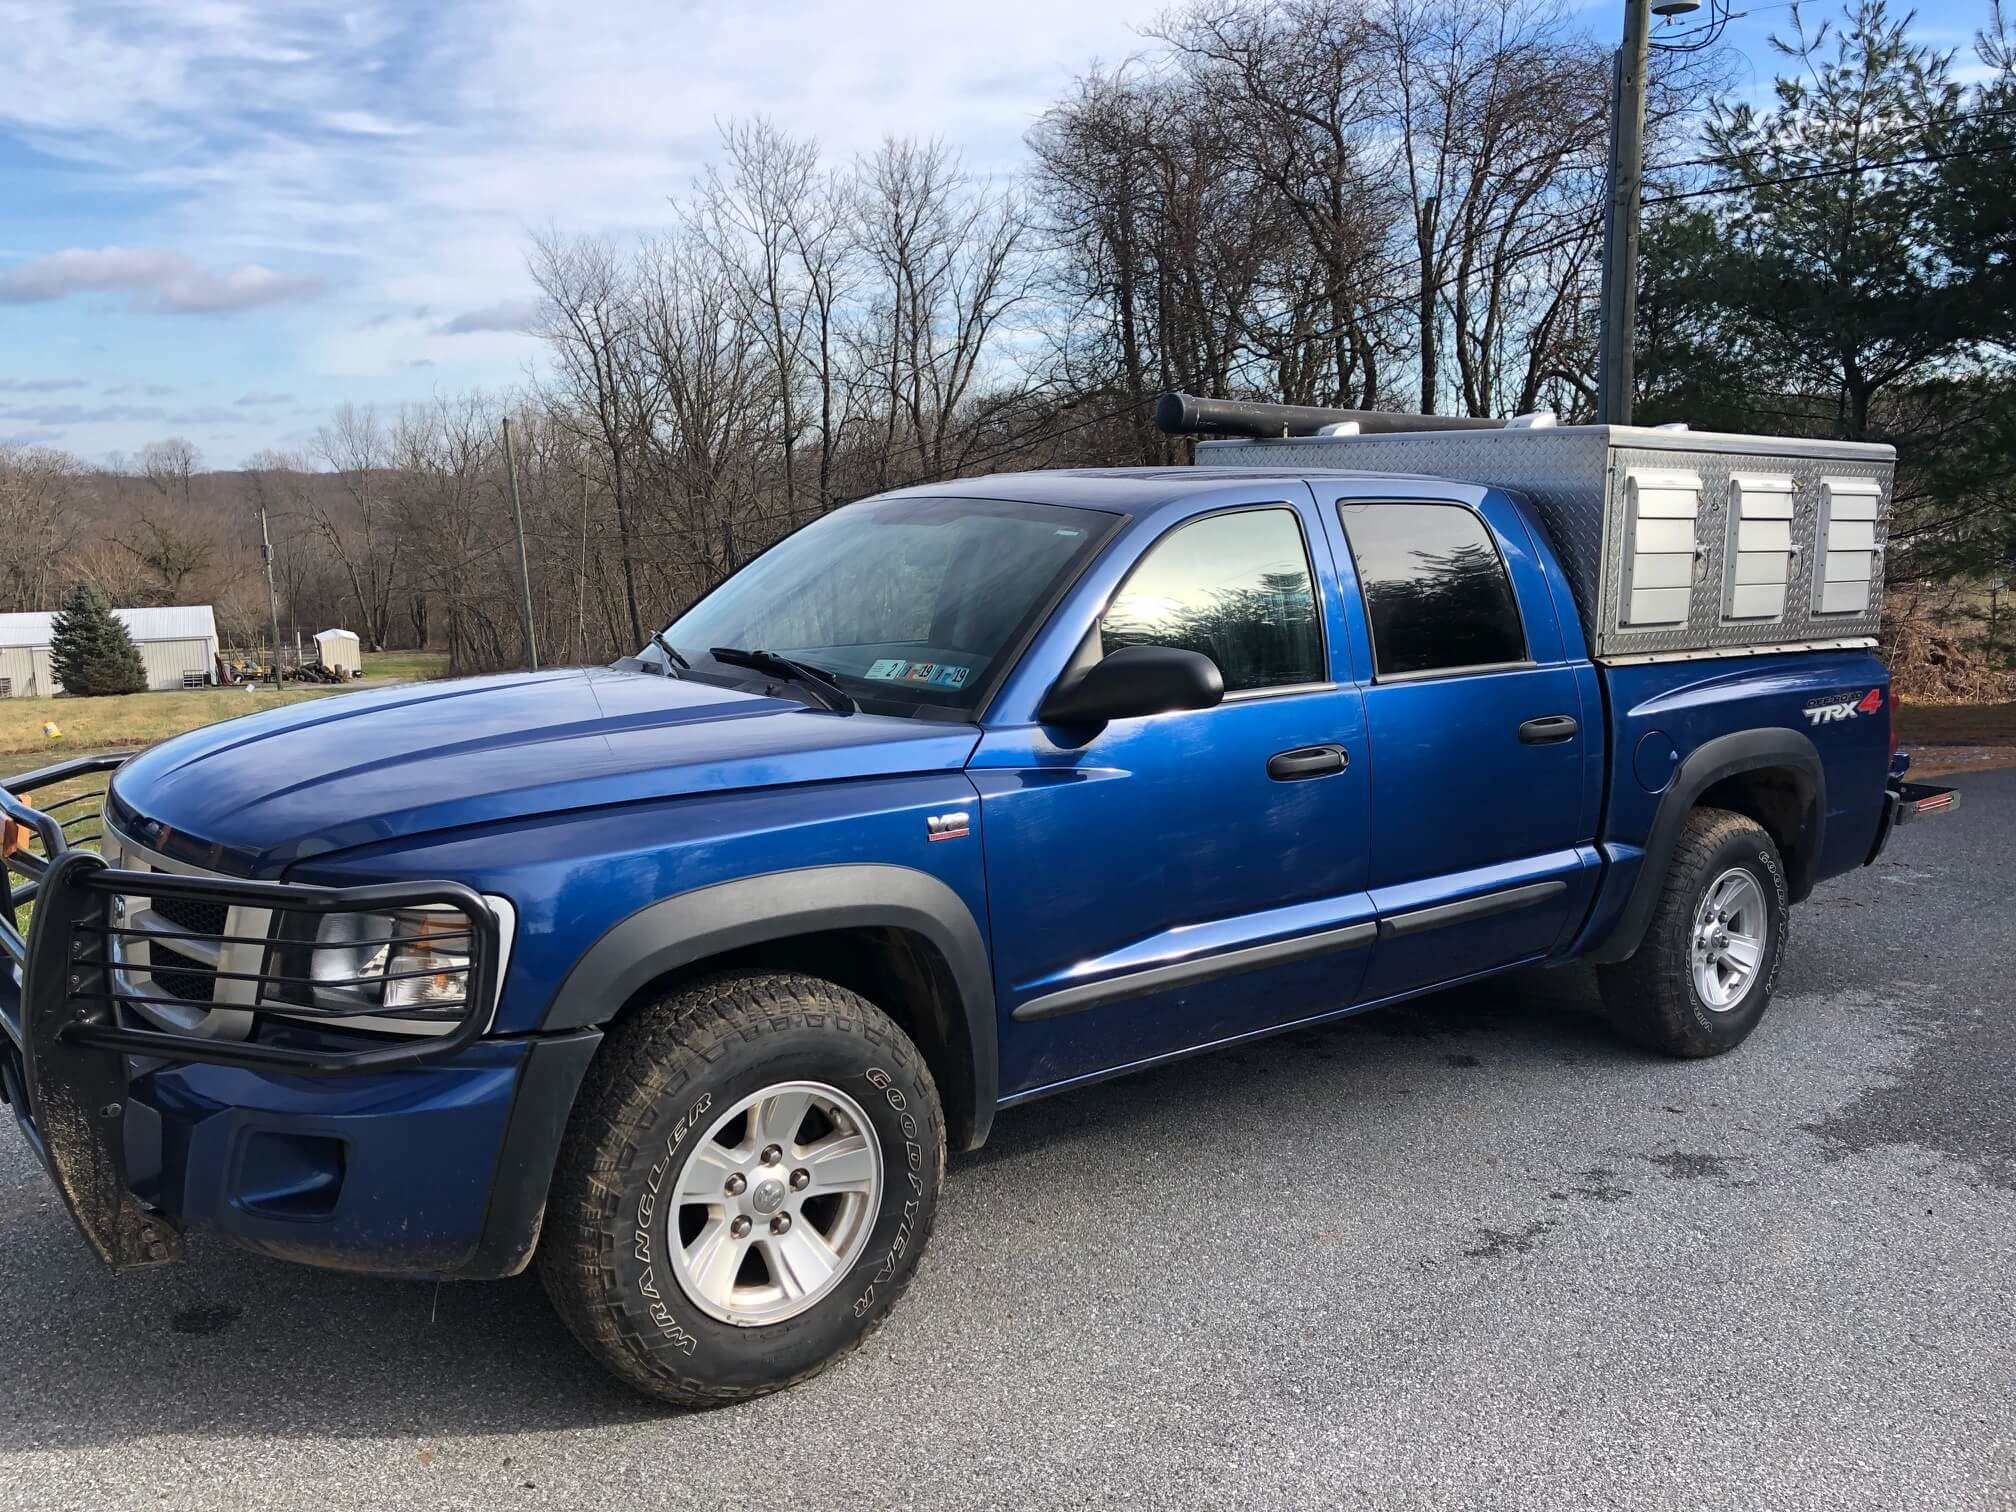 2009 Dodge Dakota TRX Off Road 4×4 with 6 Hole SS/DP Steel Topper